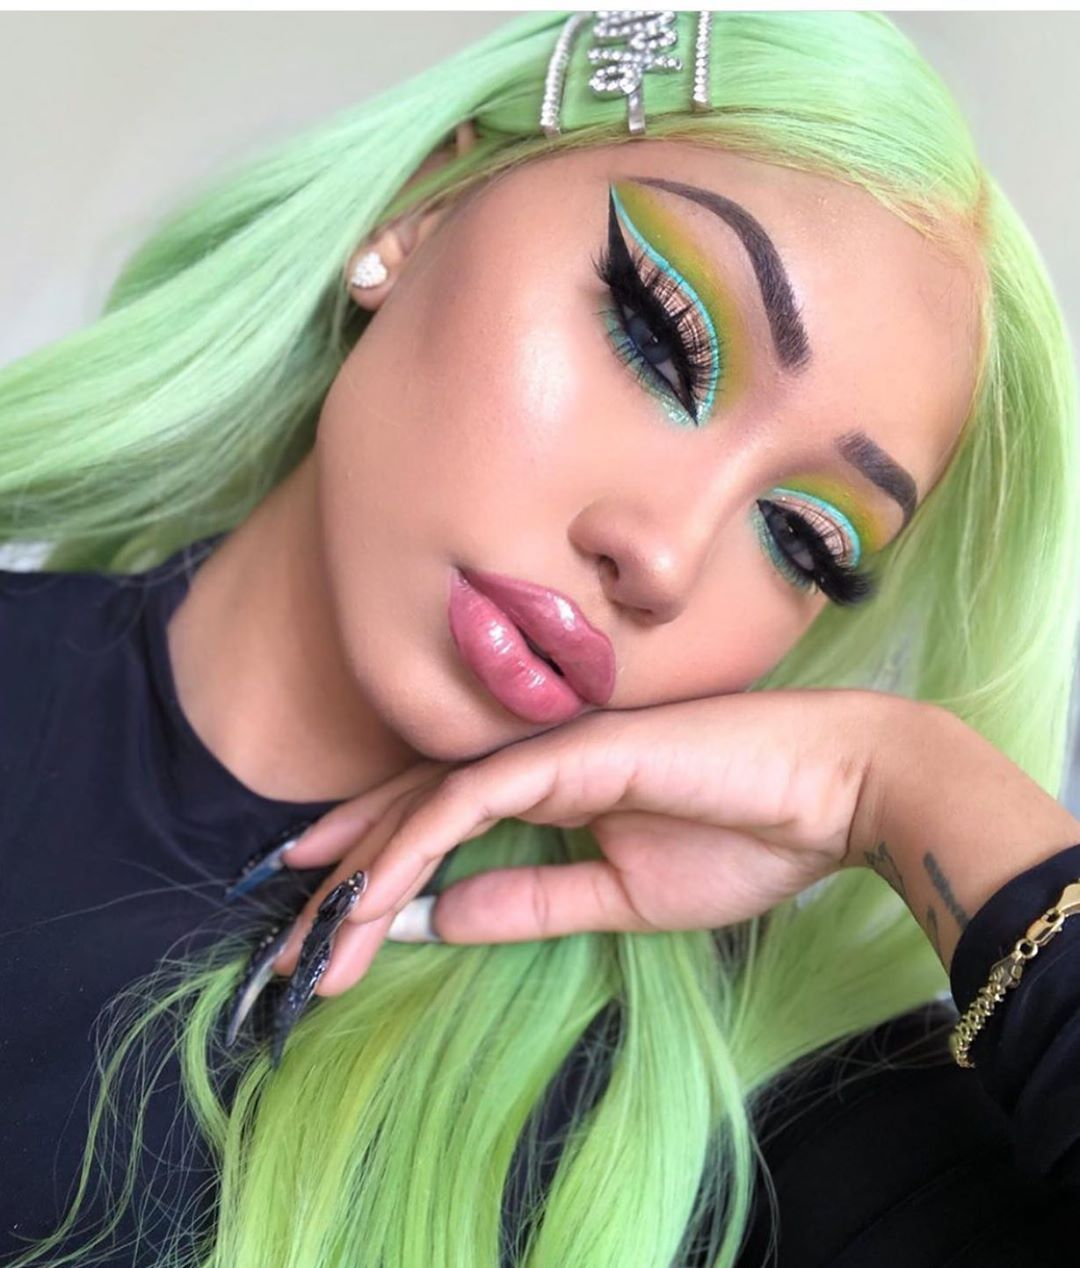 Green Wigs Lace Front Wigs Virgin Hair For Black Women Wig With Blonde Highlights 12 Inch Bob Wig Color Wigs Bright Red Wig Free Shipping